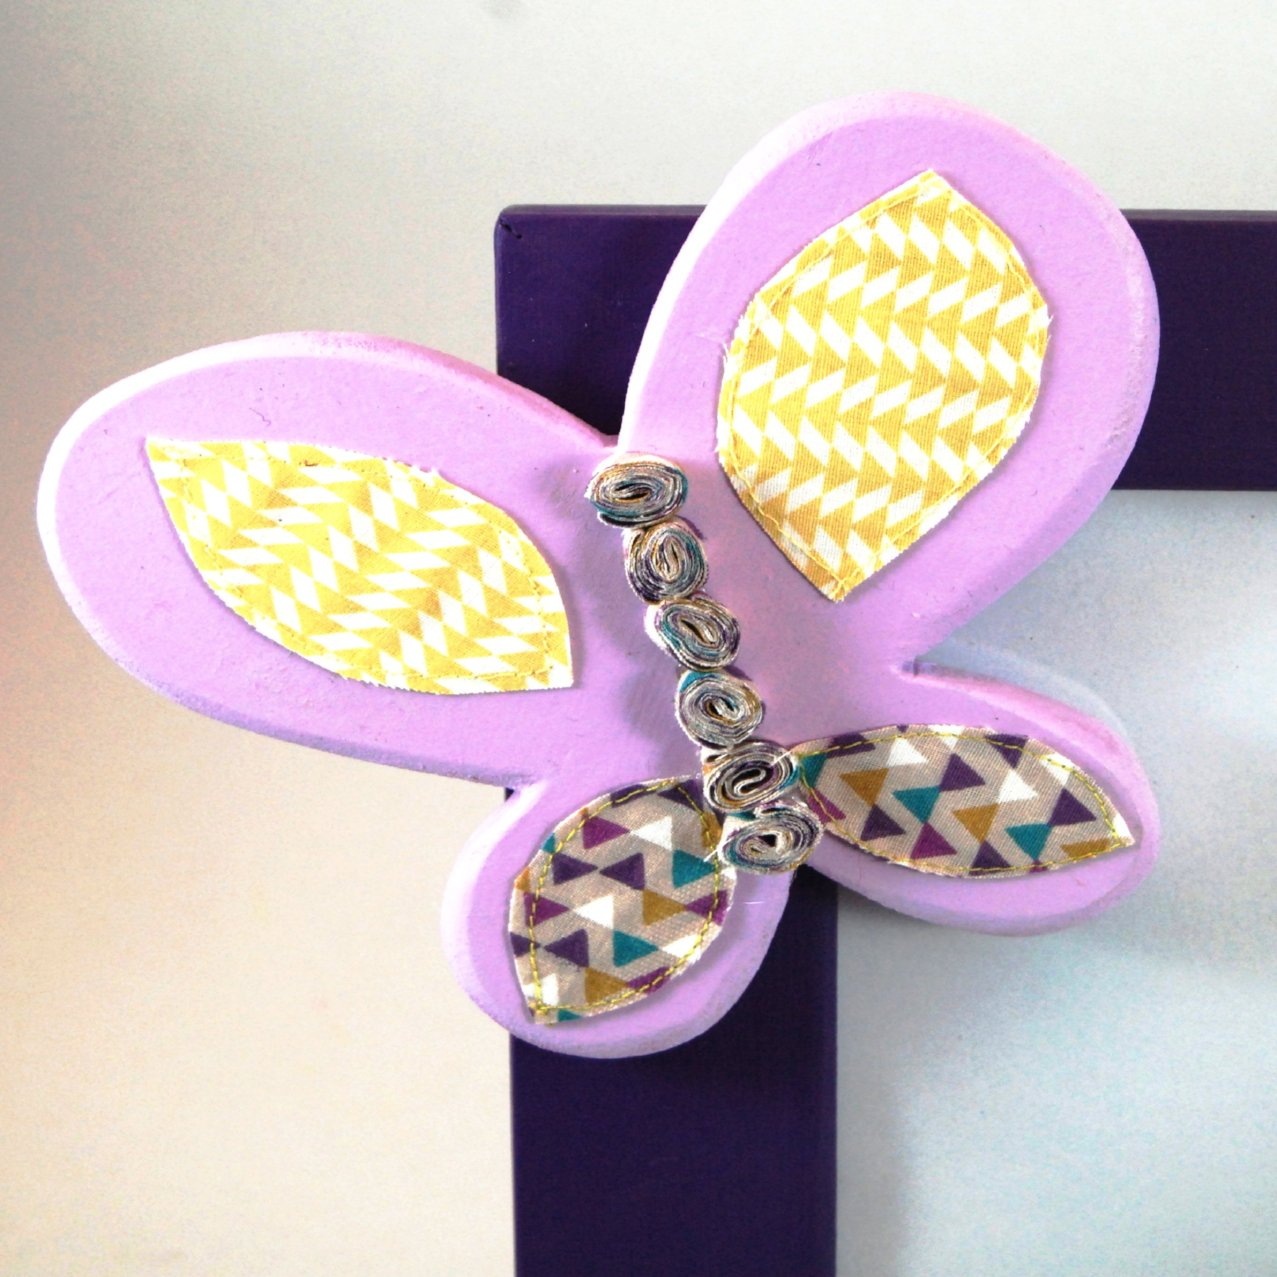 Butterfly Photo Frame - Kids Room Decor | Toys Gifts | Childrens Interiors | Rooms for Rascals